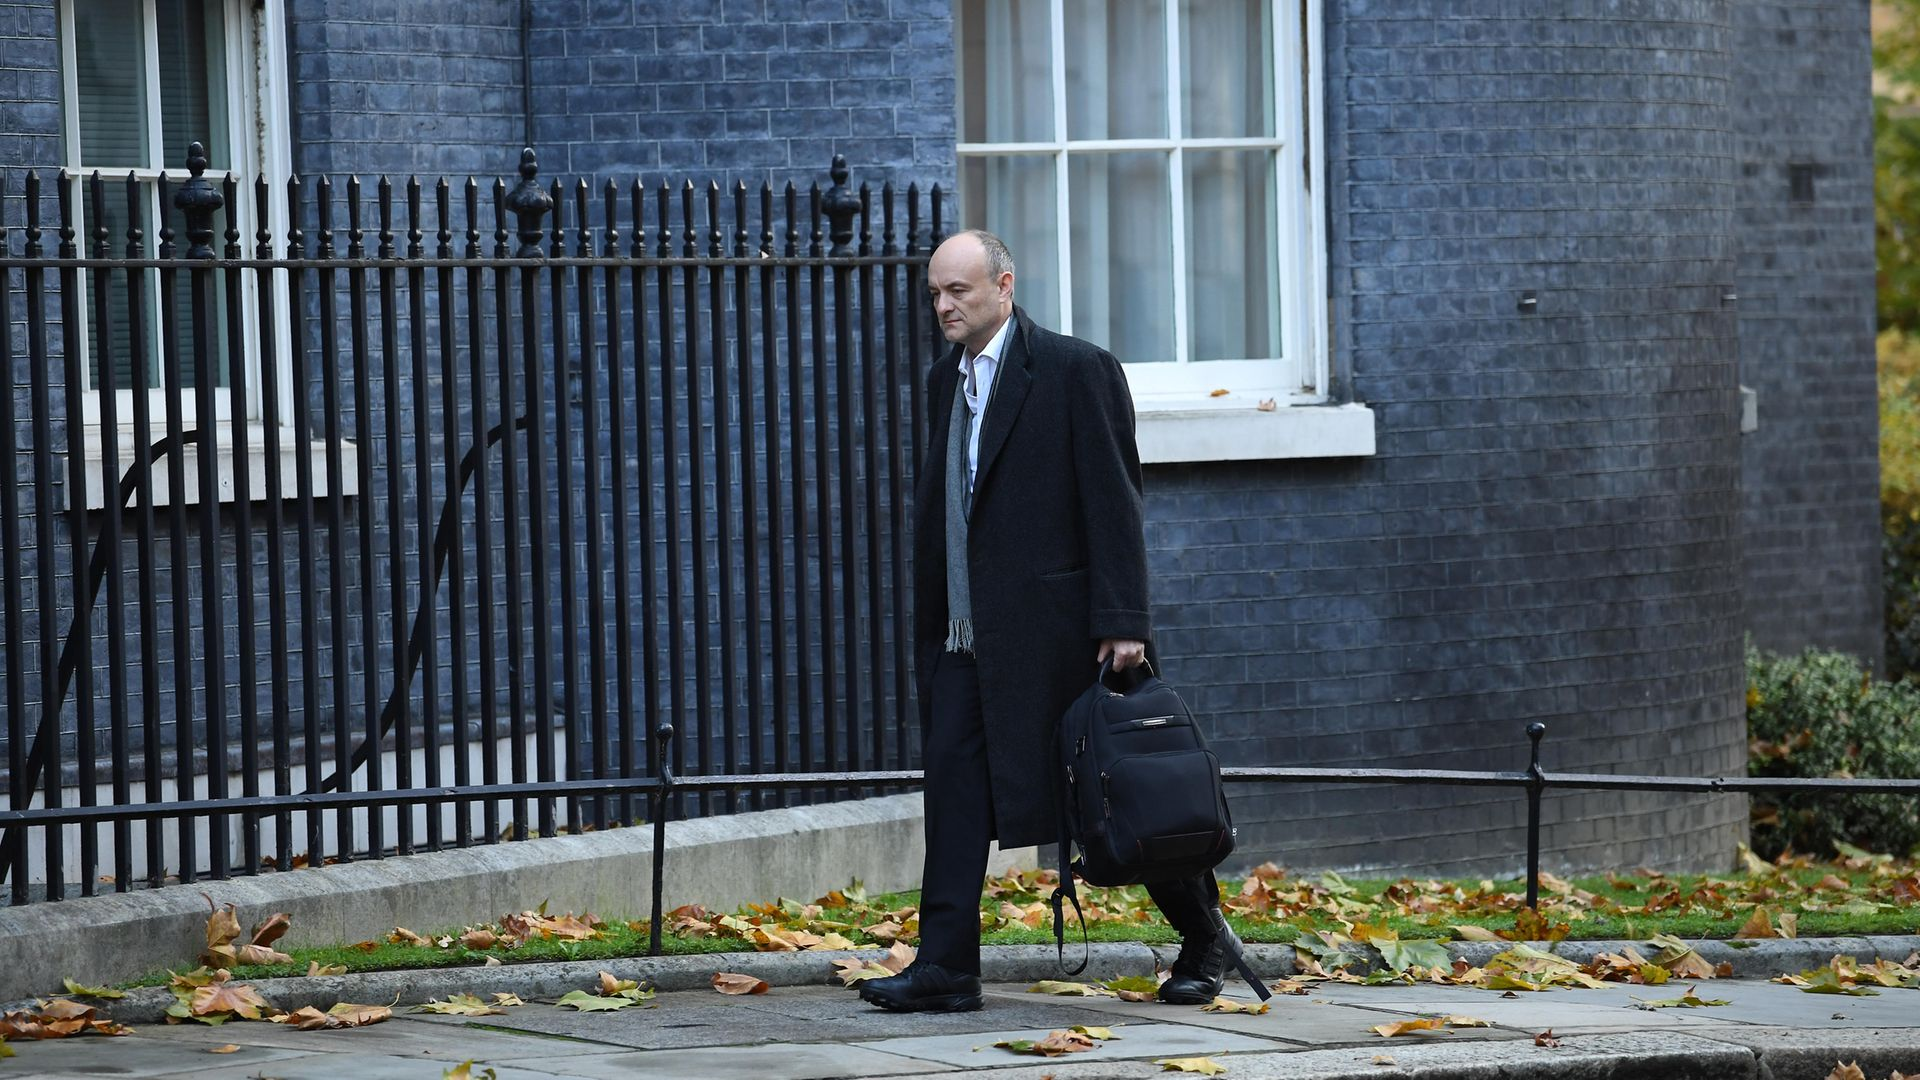 Prime Minister Boris Johnson's top aide Dominic Cummings arrives in Downing Street, London, the morning after Lee Cain announced he is resigning as Downing Street's director of communications and will leave the post at the end of the year. - Credit: PA